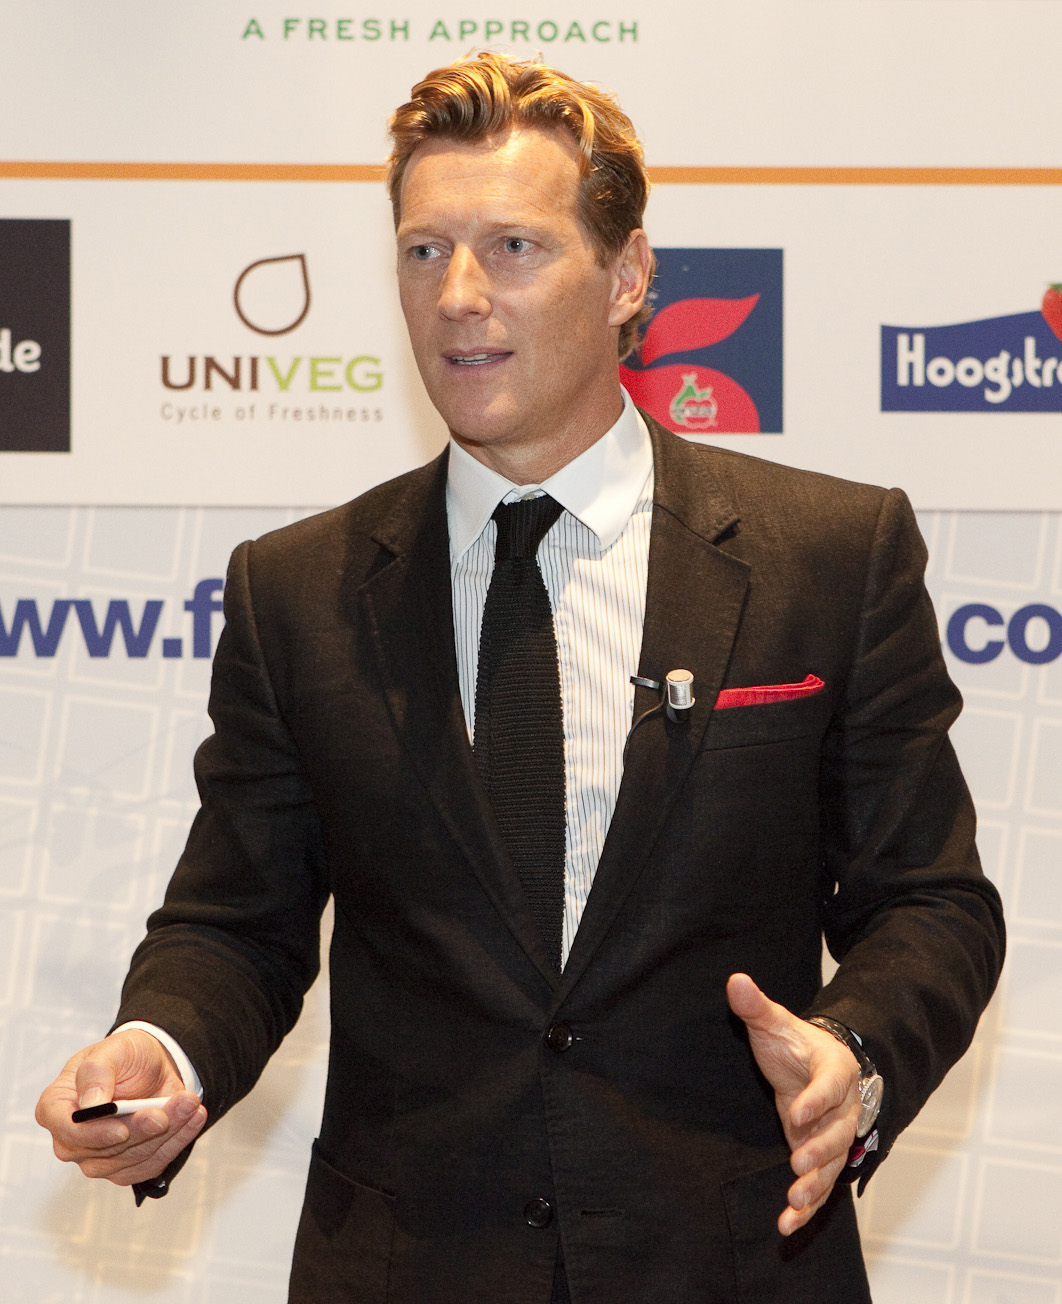 File:Magnus Scheving 2 cropped.jpg - Wikimedia Commons